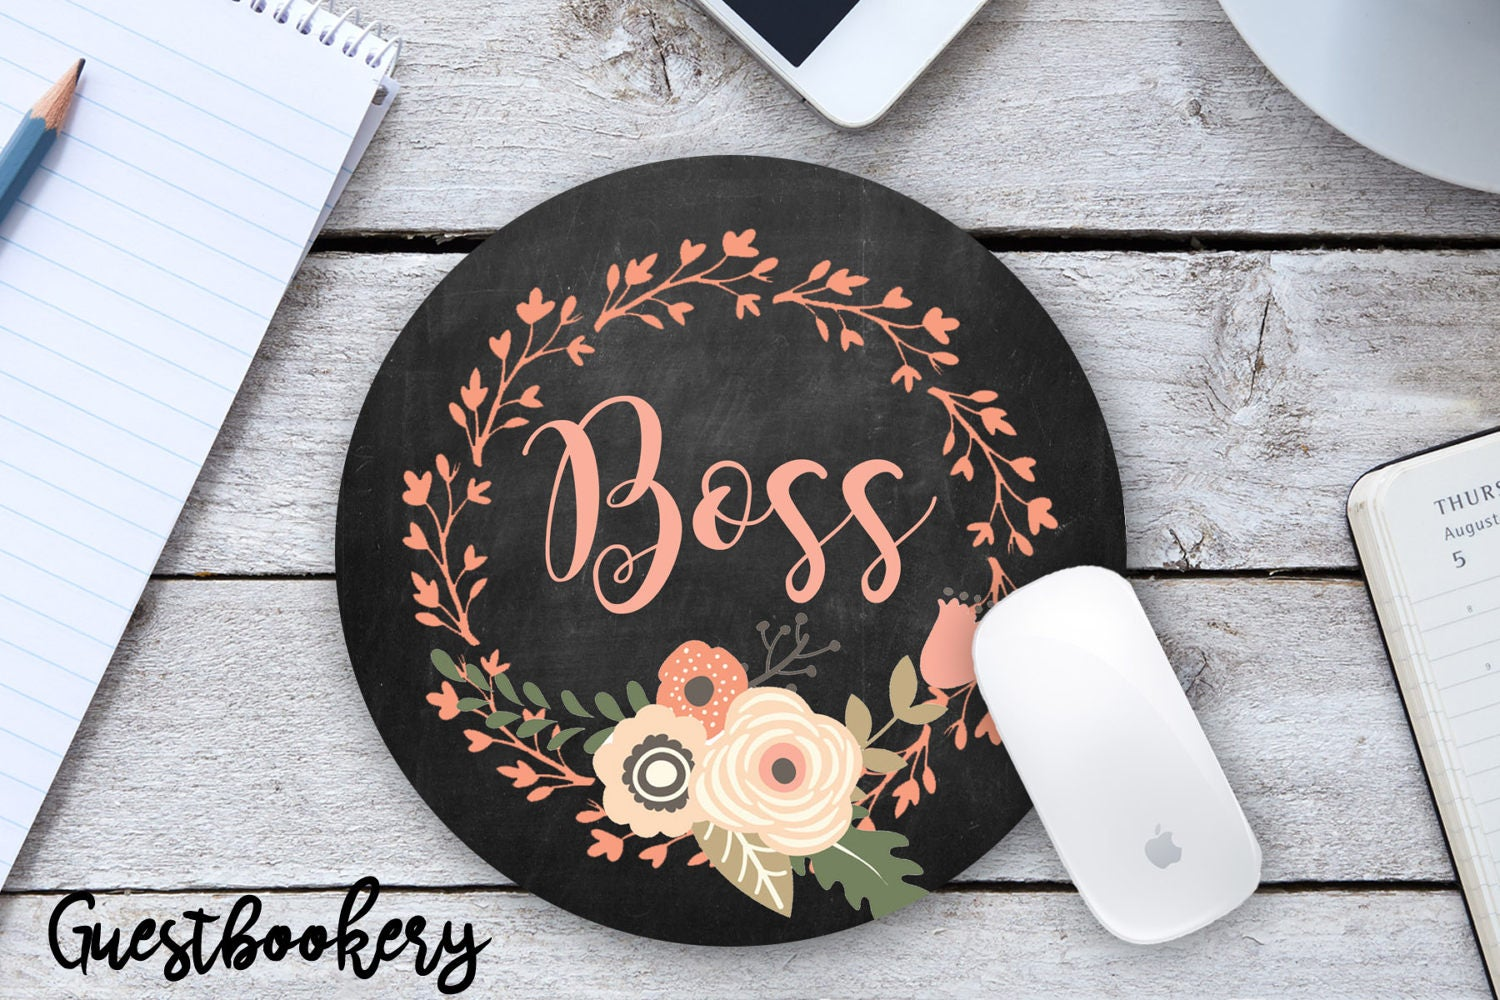 Boss Mousepad - Guestbookery